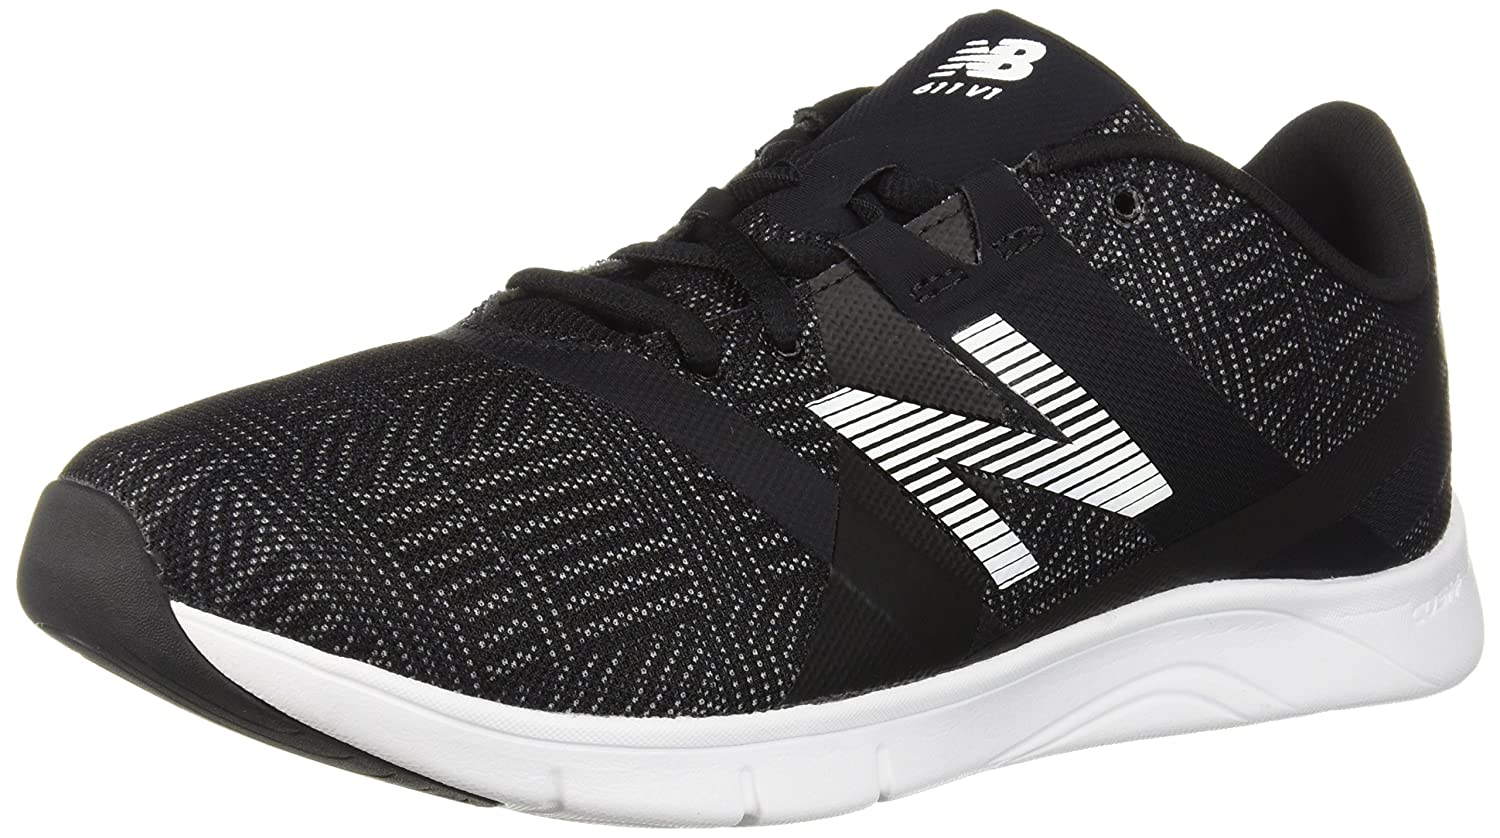 New Trainer Balance Women's 611v1 Cross Trainer New B0751SG74X 6 B(M) US|Black/White 7d9f50